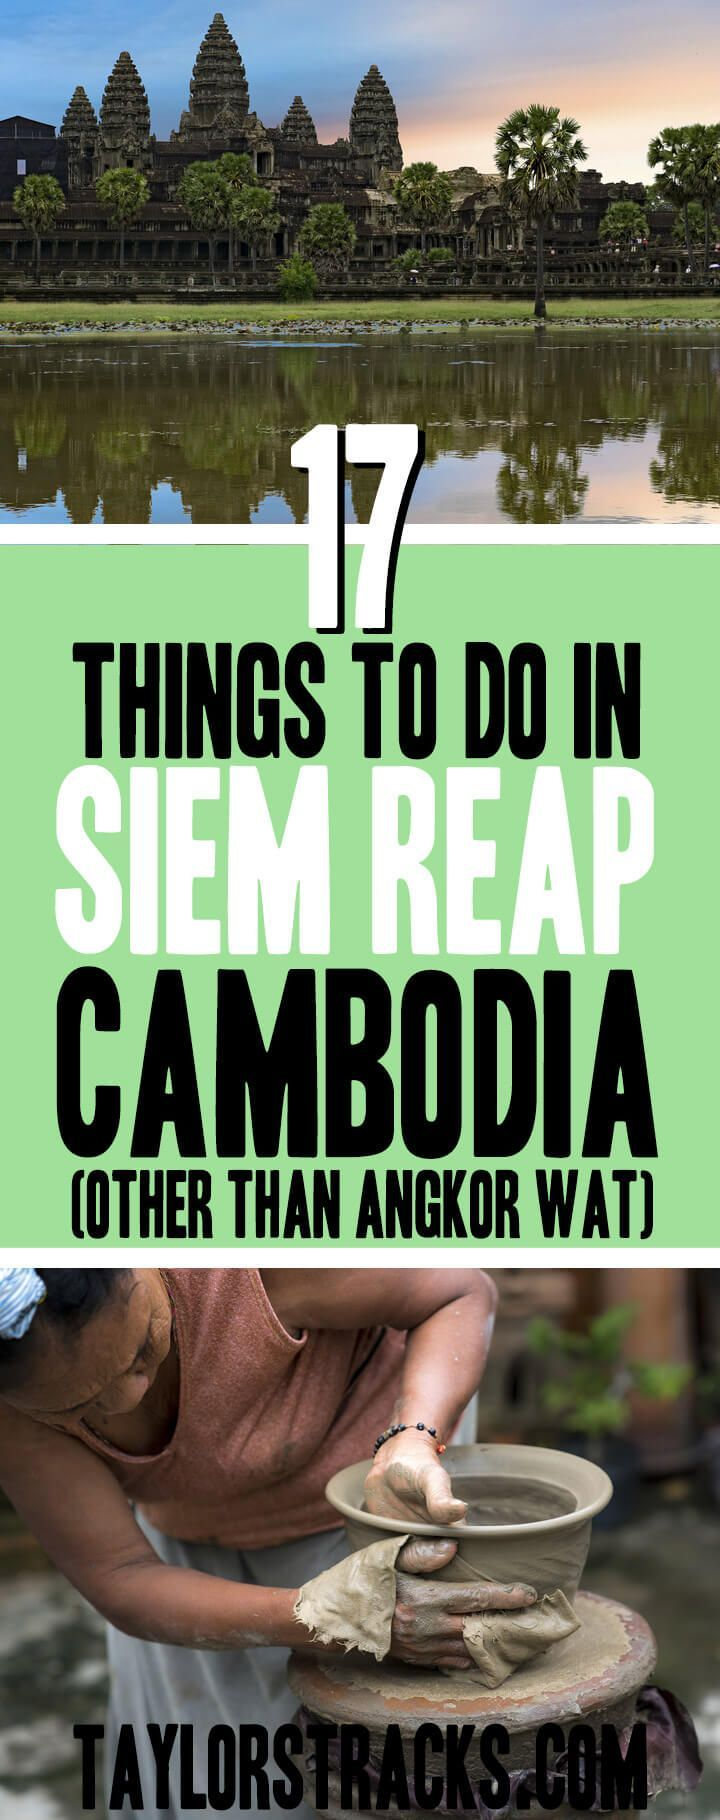 There are so many things to do in Siem Reap that are more than just temples. Click to check out this list of the must-dos and alternative options in Siem Reap, Cambodia. #cambodia #siemreap ***** Siem Reap Cambodia | Things to do in Siem Reap | Cambodia travel | Cambodia destinations | Siem Reap things to do in | Siem Reap hotels | Siem Reap itinerary | Southeast Asia travel | Southeast Asia tips | Southeast Asia destinations